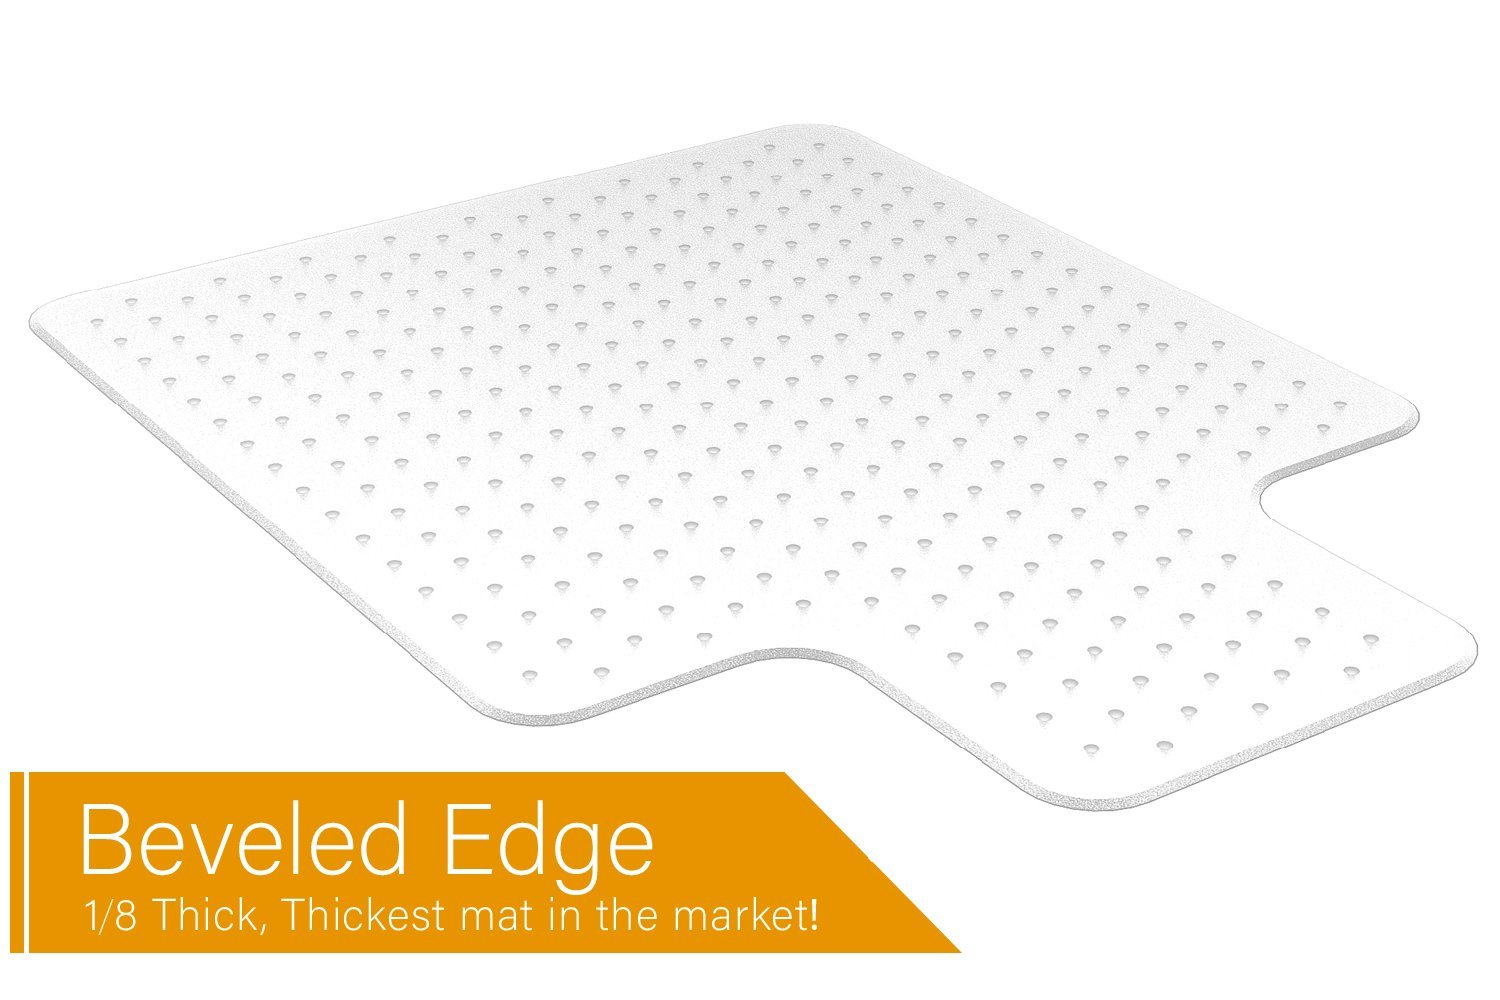 Office Chair Mat Heavy Duty Carpet Floor Protector Under Computer Desk Sturdy Studded Clear Polycarbonate Plastic Beveled Edges Low Pile Large 36'' X 48'' Thick 1/8'' with Lip Shipped Flat